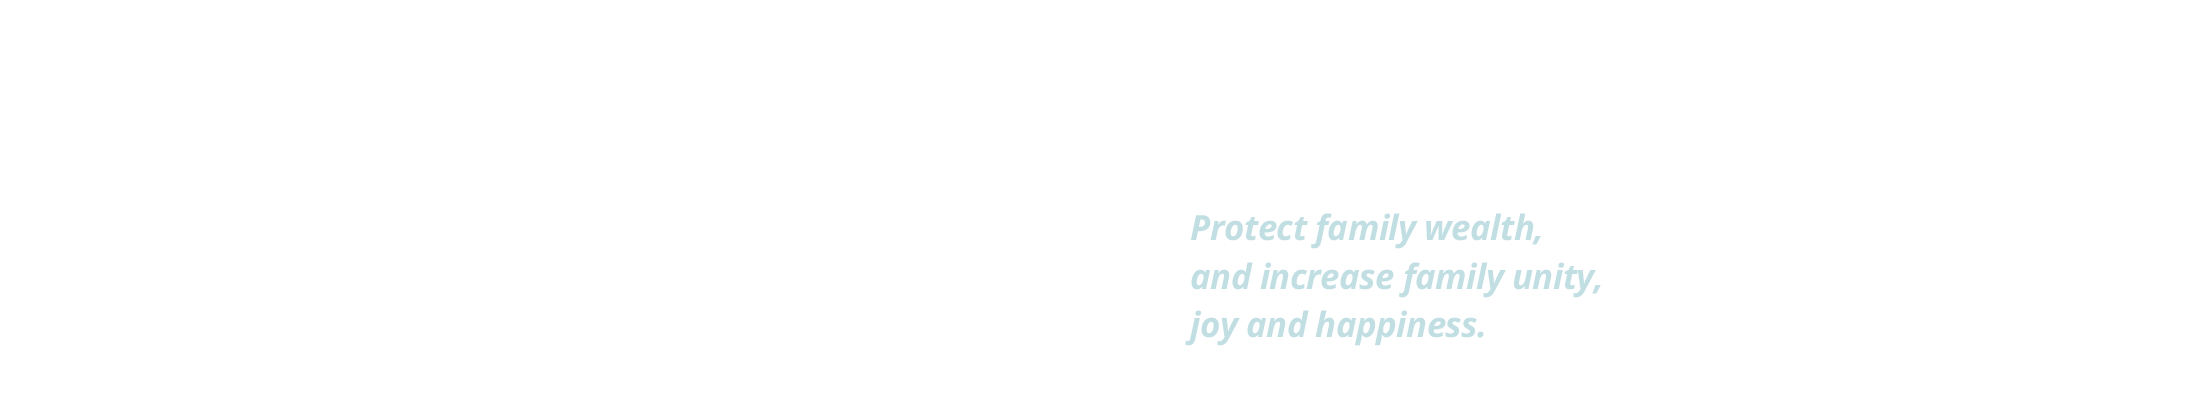 protect family wealth, and increase family unity, joy and happiness